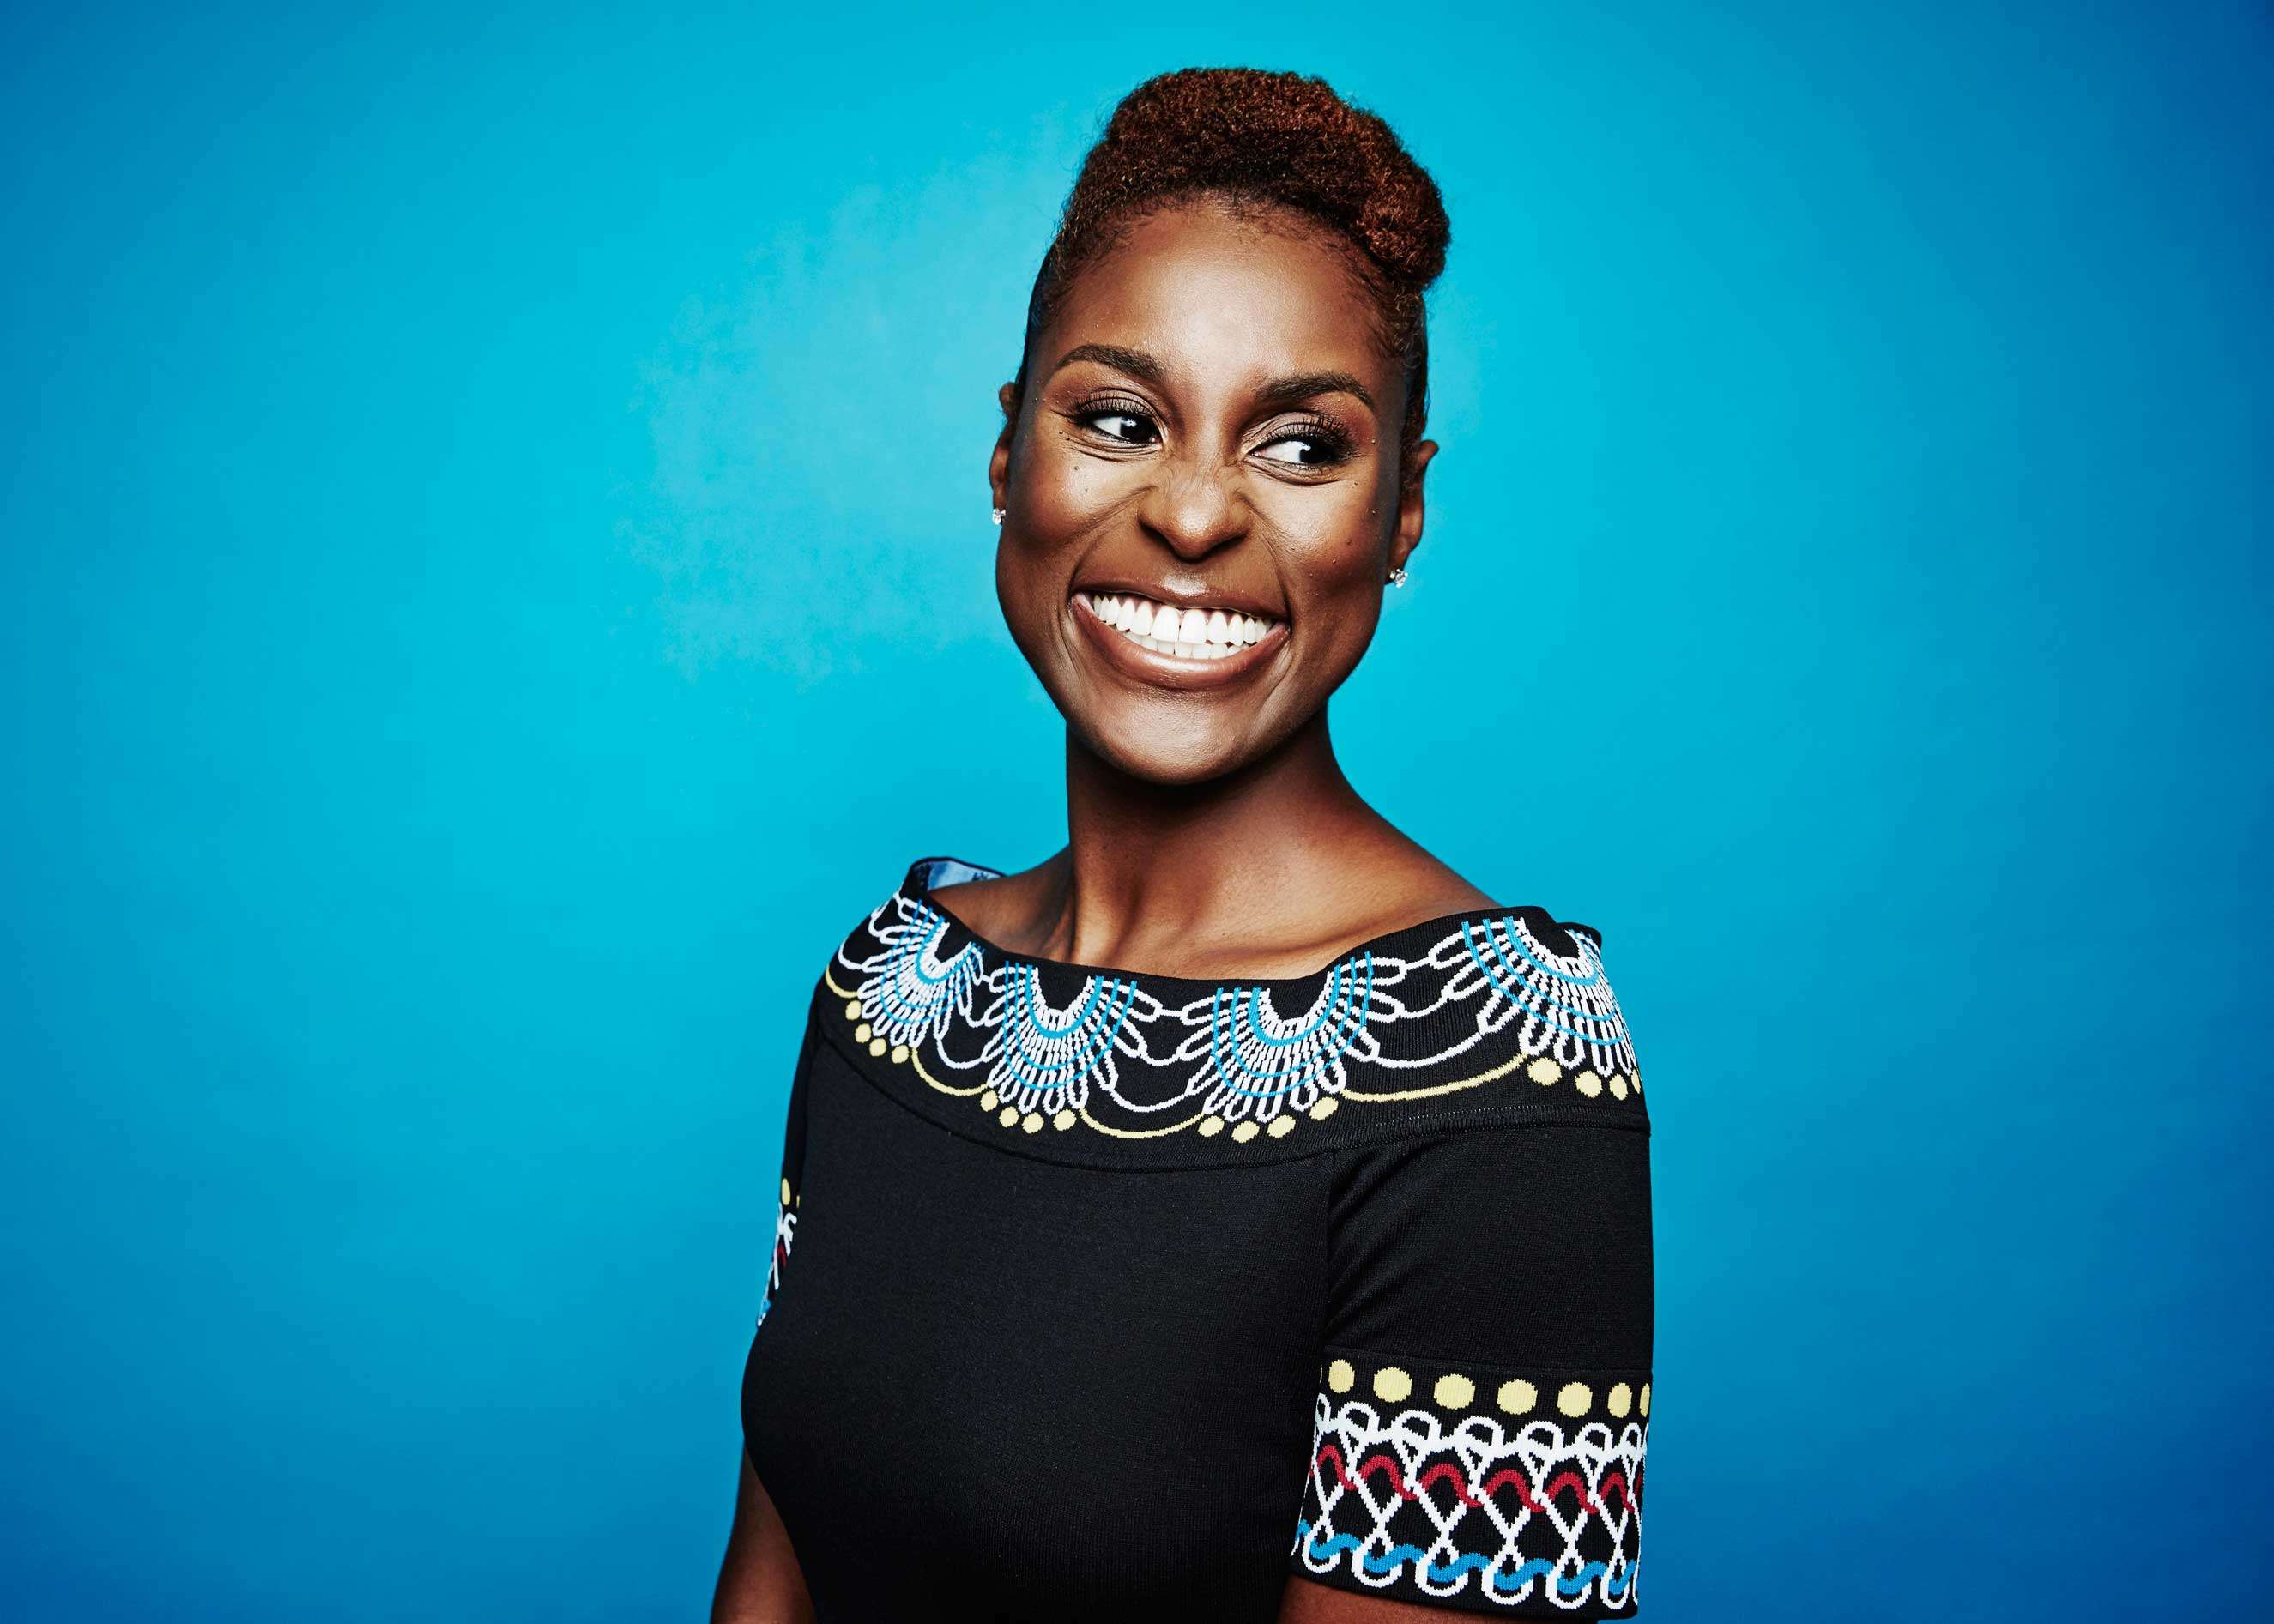 Issa Rae from HBO's 'Insecure' poses for a portrait at the 2016 Summer TCAs Getty Images Portrait Studio at the Beverly Hilton Hotel on July 27th, 2016 in Beverly Hills, California